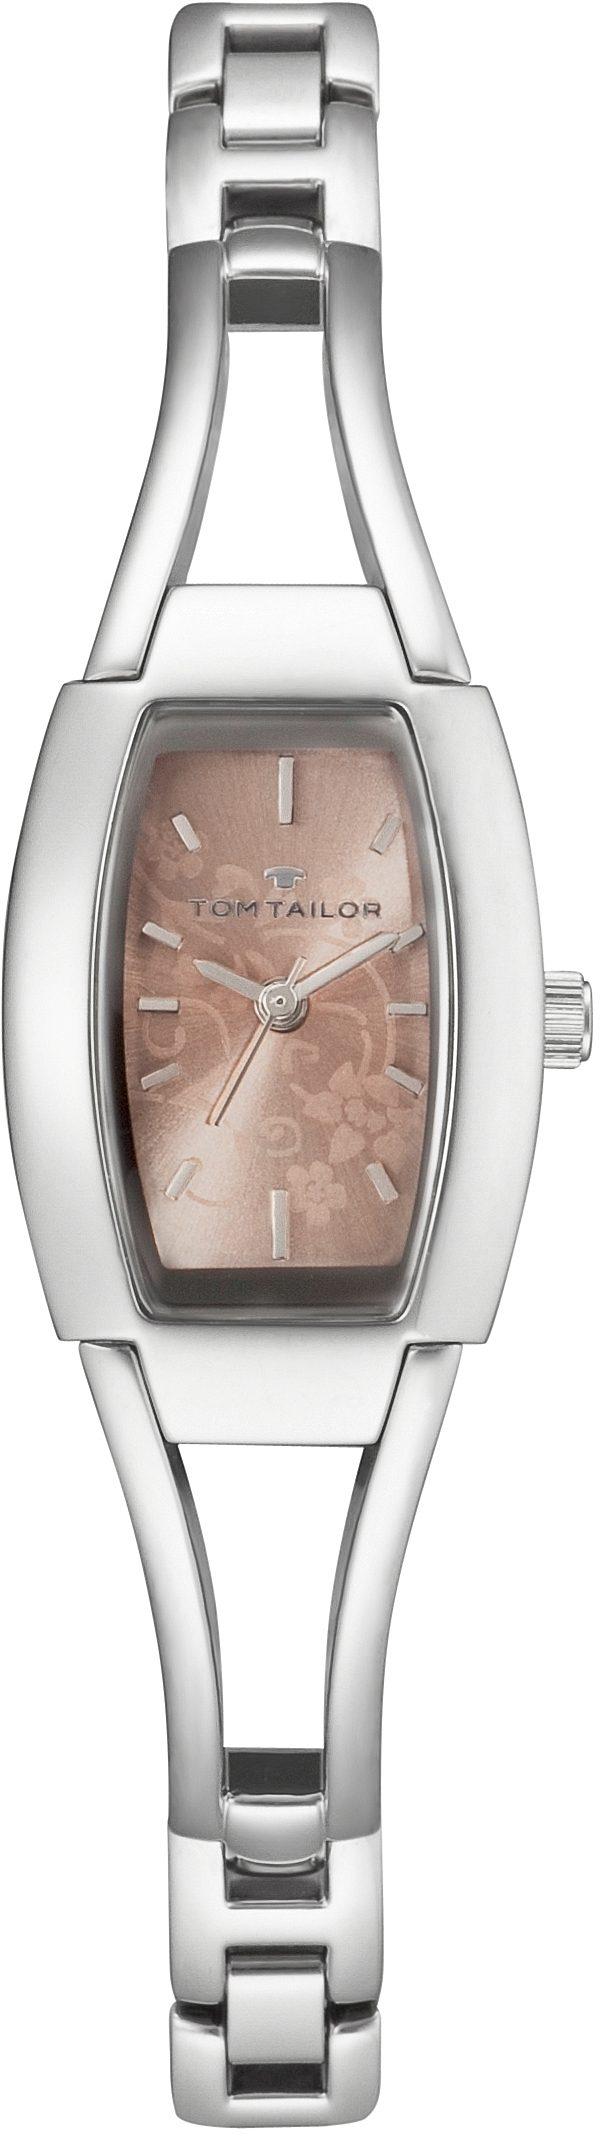 Tom Tailor Armbanduhr, »5401208«